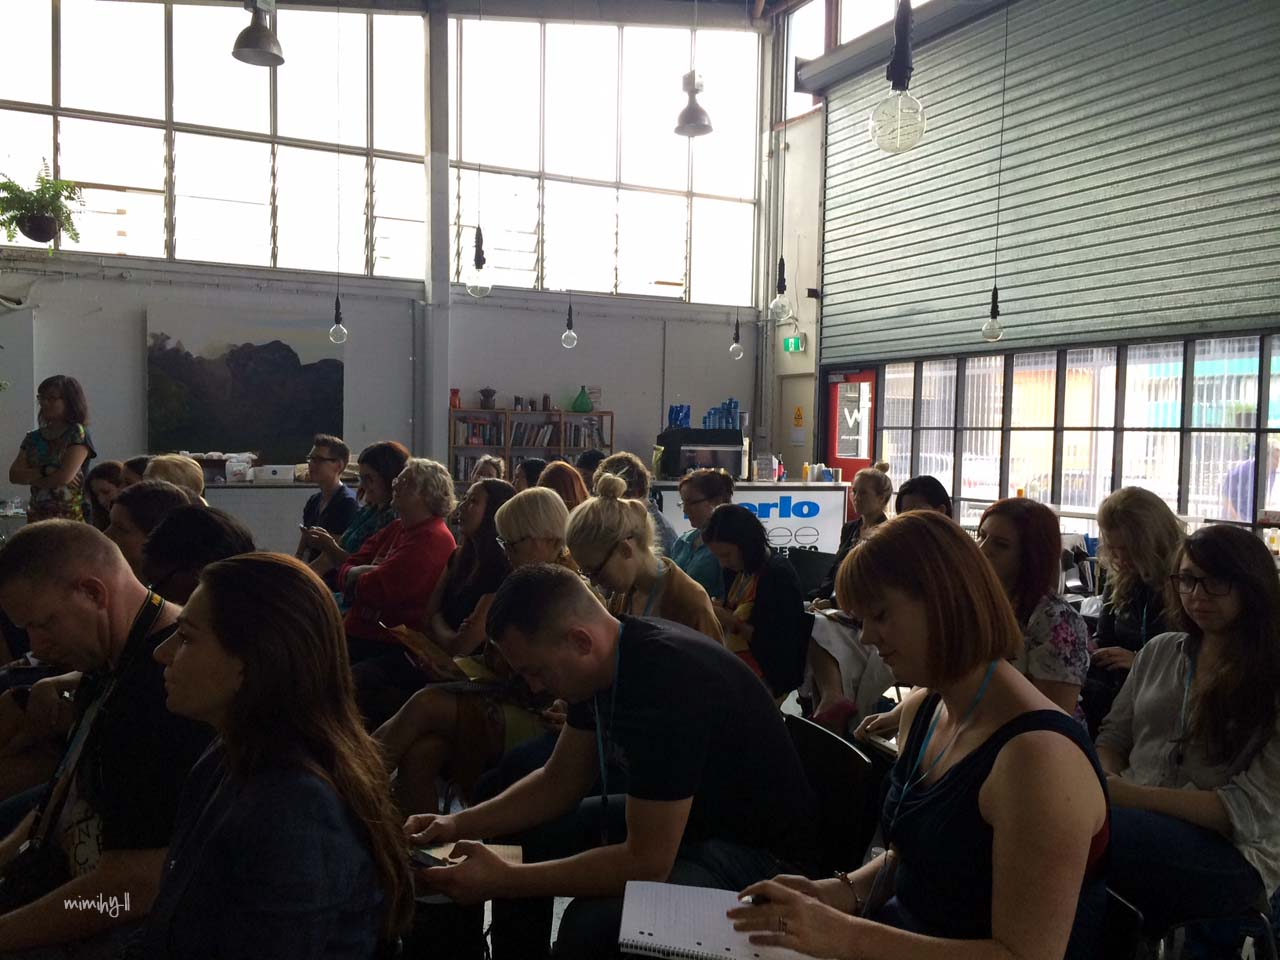 Eat Drink Blog 2014 - Bloggers Listening Attentively